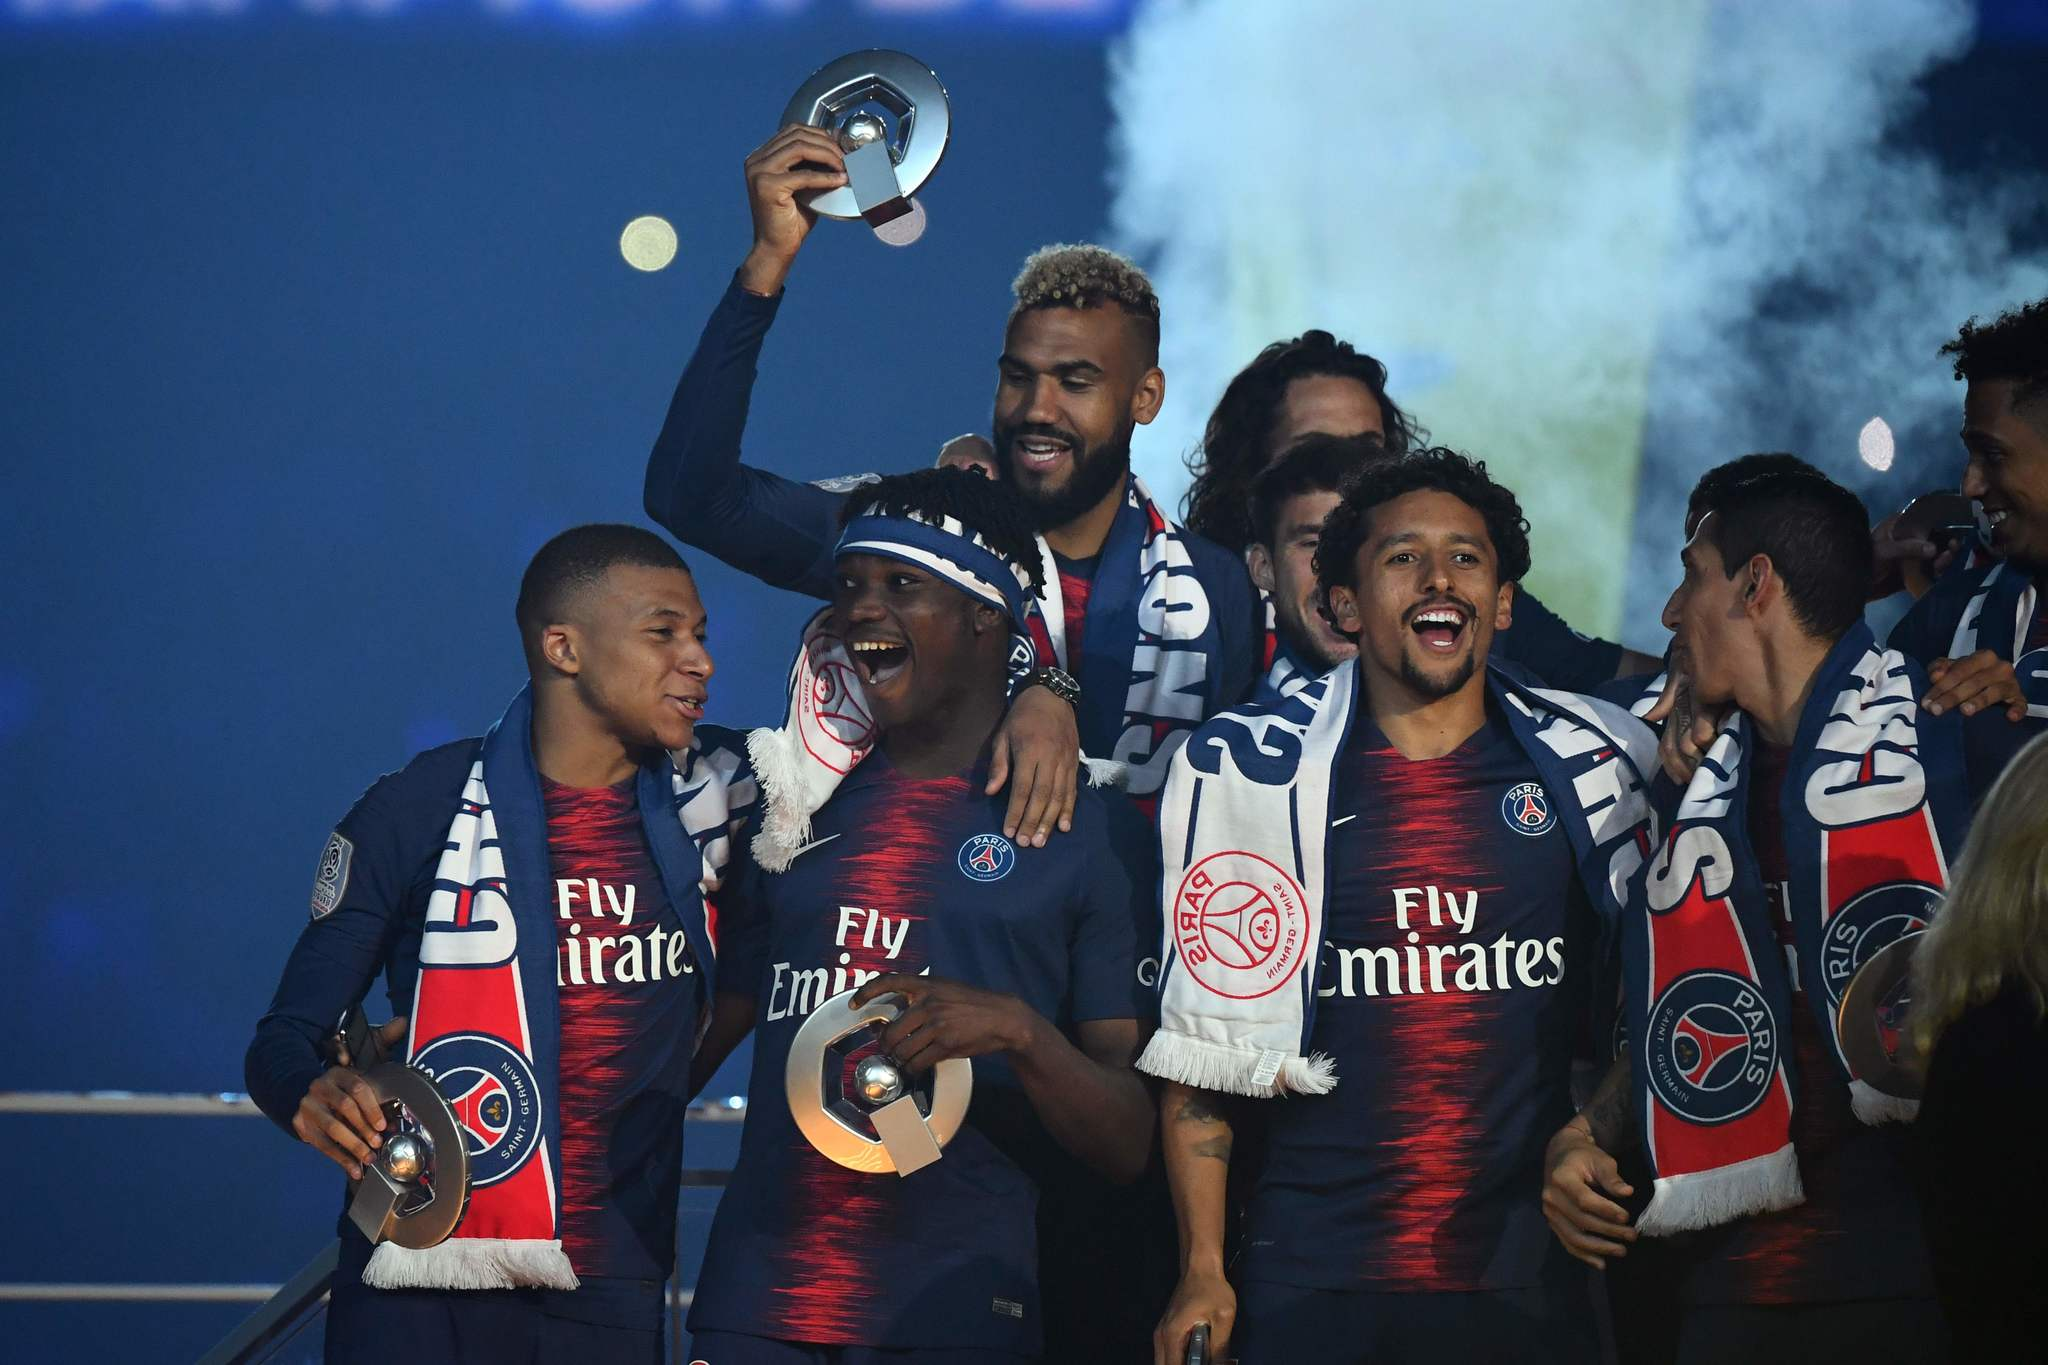 Paris Saint-Germains French forward Kylian <HIT>Mbappe</HIT> celebrates with their champions trophies at the end of the French L1 football match between Paris Saint-Germain (PSG) and Dijon at the Parc des Princes stadium in Paris on May 18, 2019. (Photo by FRANCK FIFE / AFP)